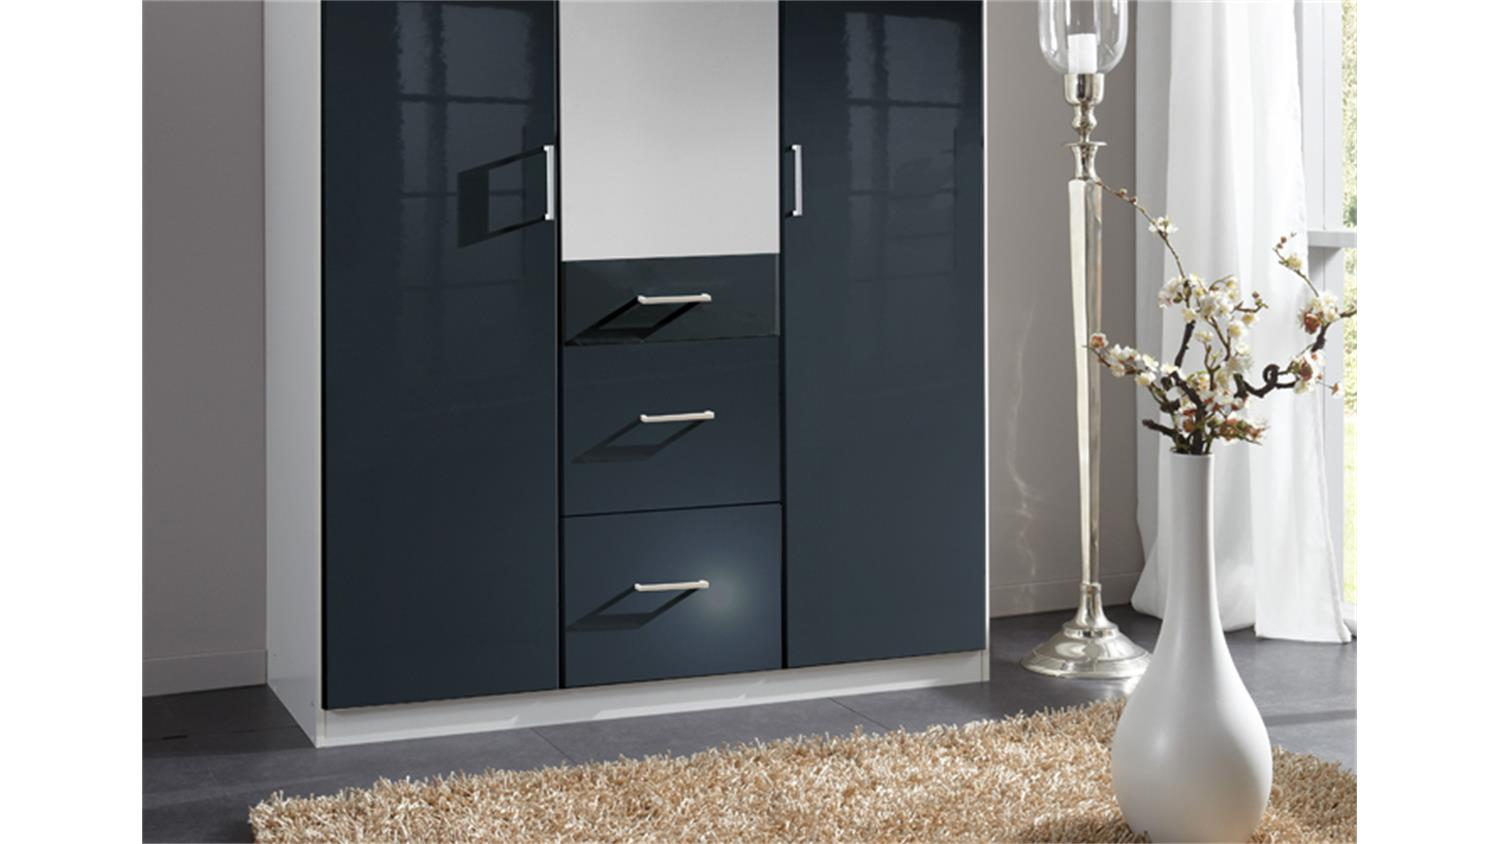 kleiderschrank clack front hochglanz schwarz spiegel 135 cm. Black Bedroom Furniture Sets. Home Design Ideas